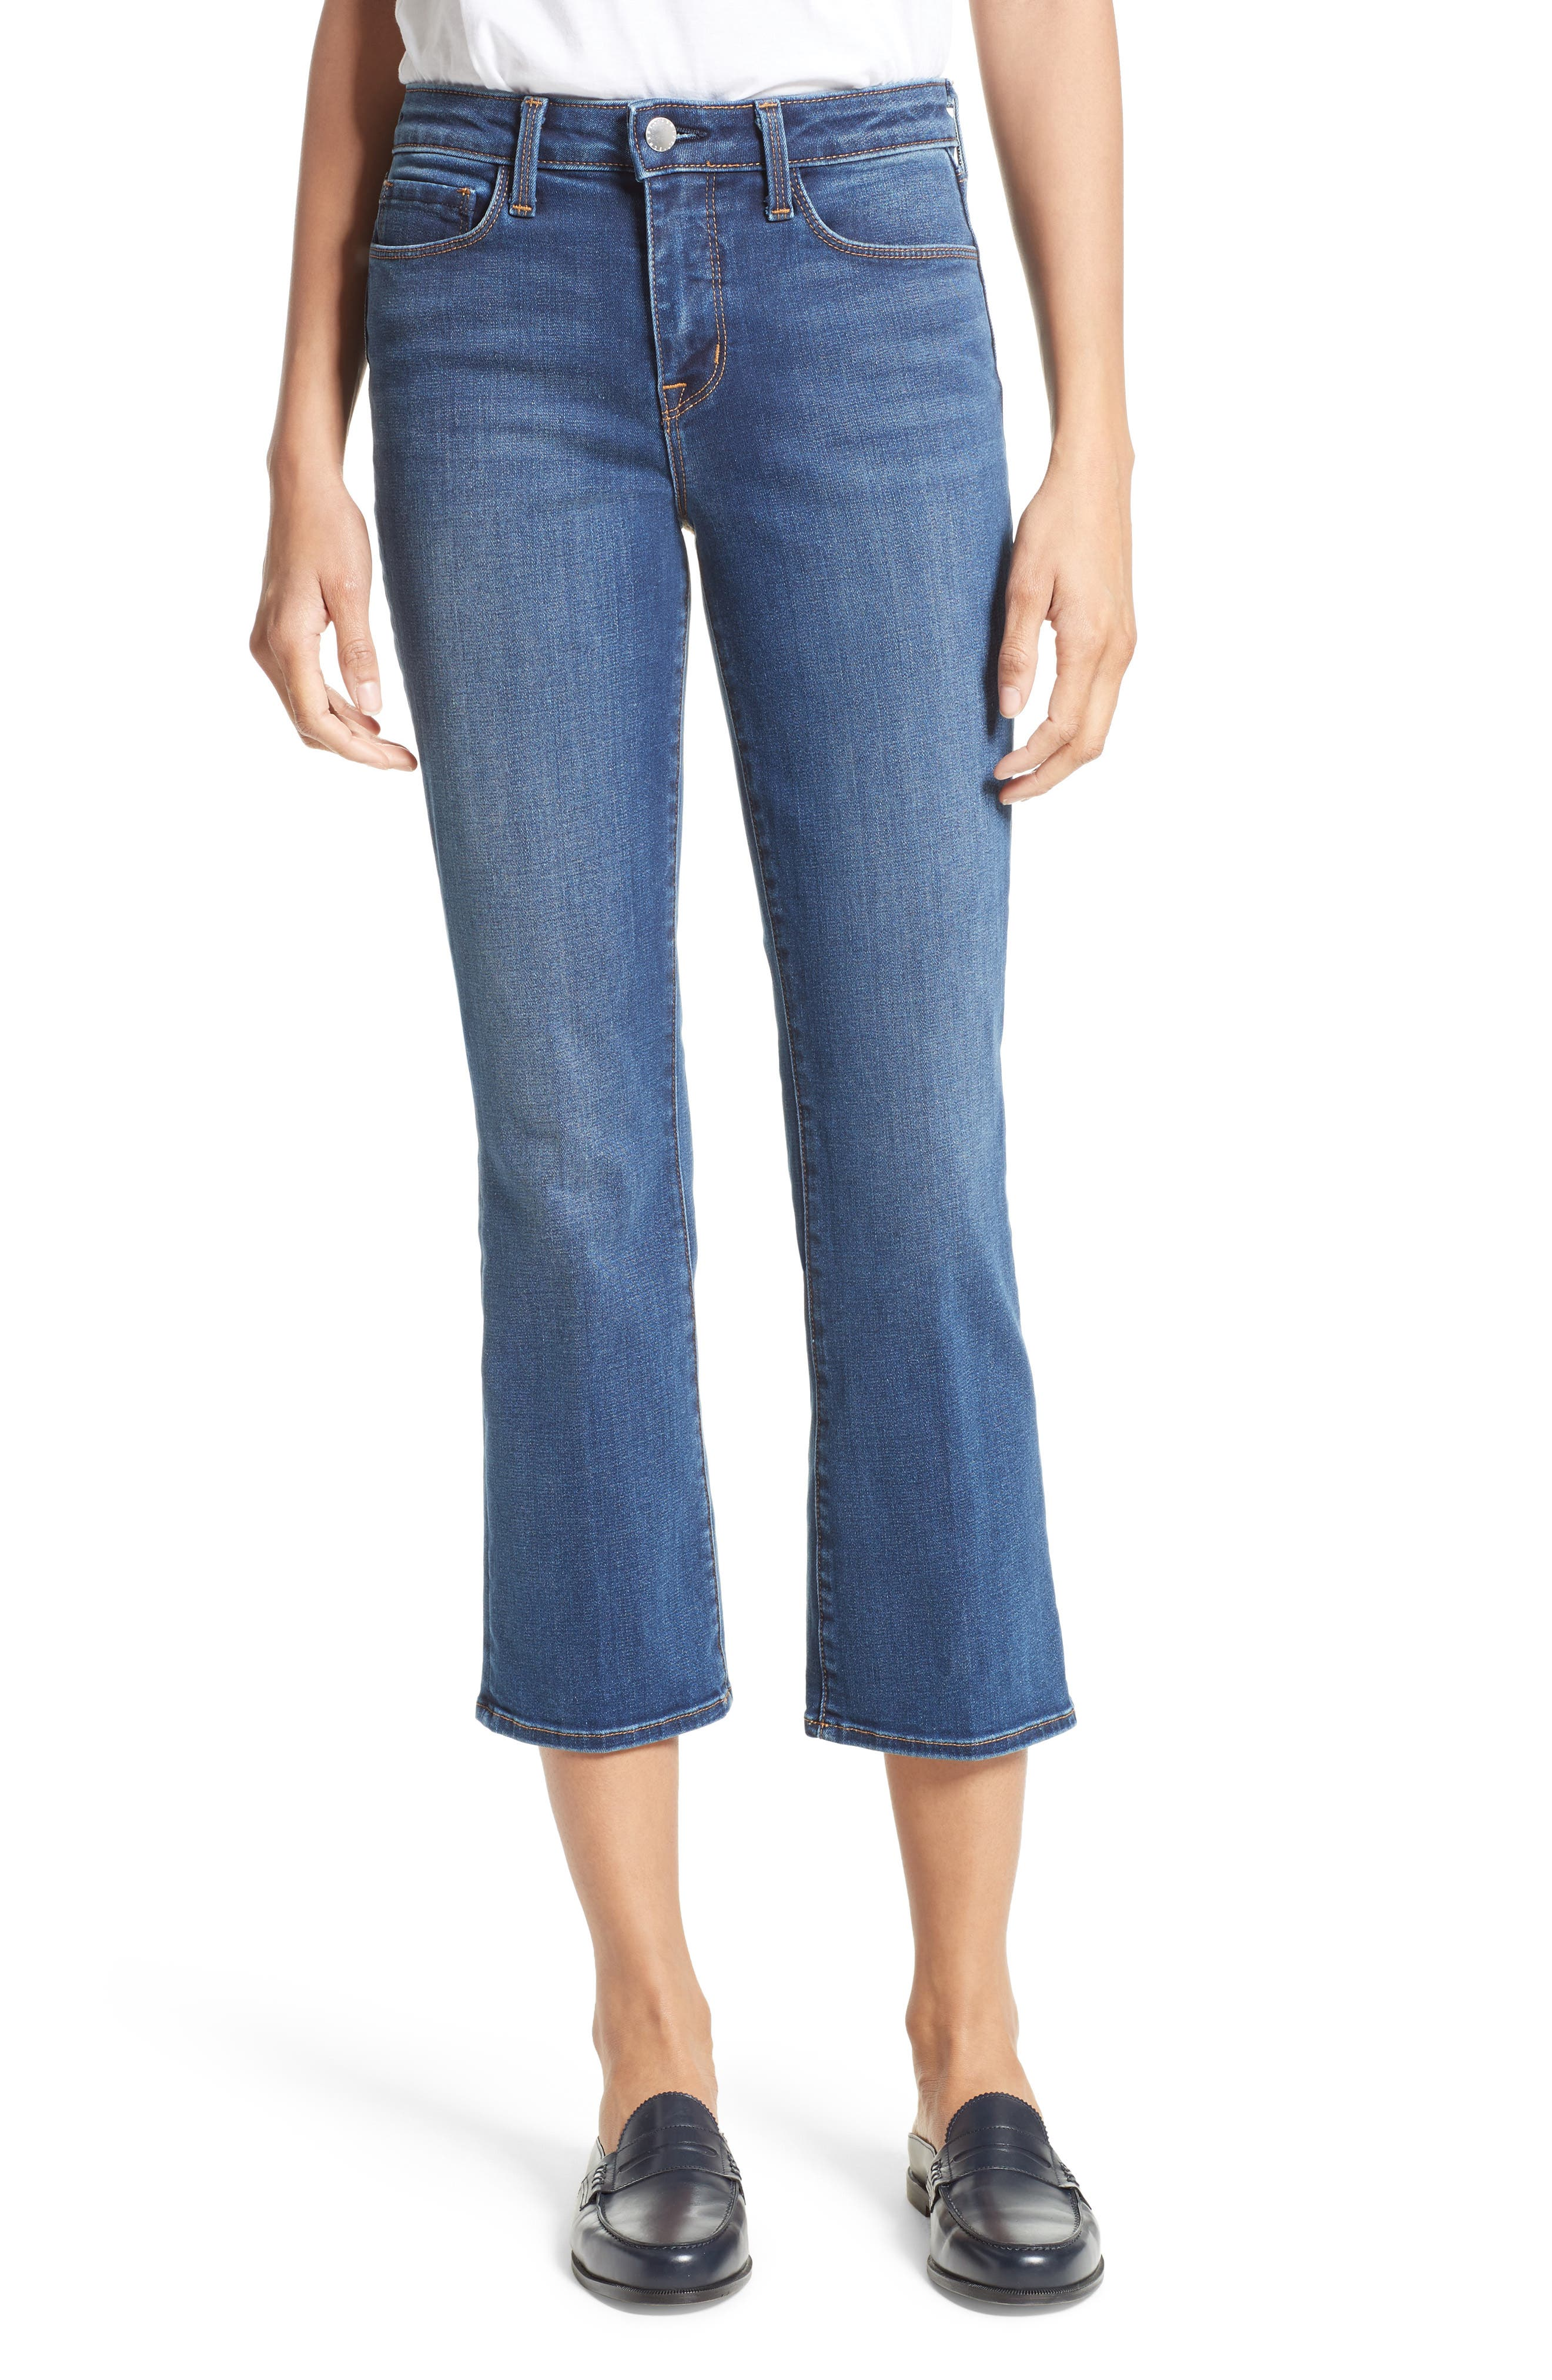 Alternate Image 1 Selected - L'AGENCE Crop Baby Flare Jeans (Azul)